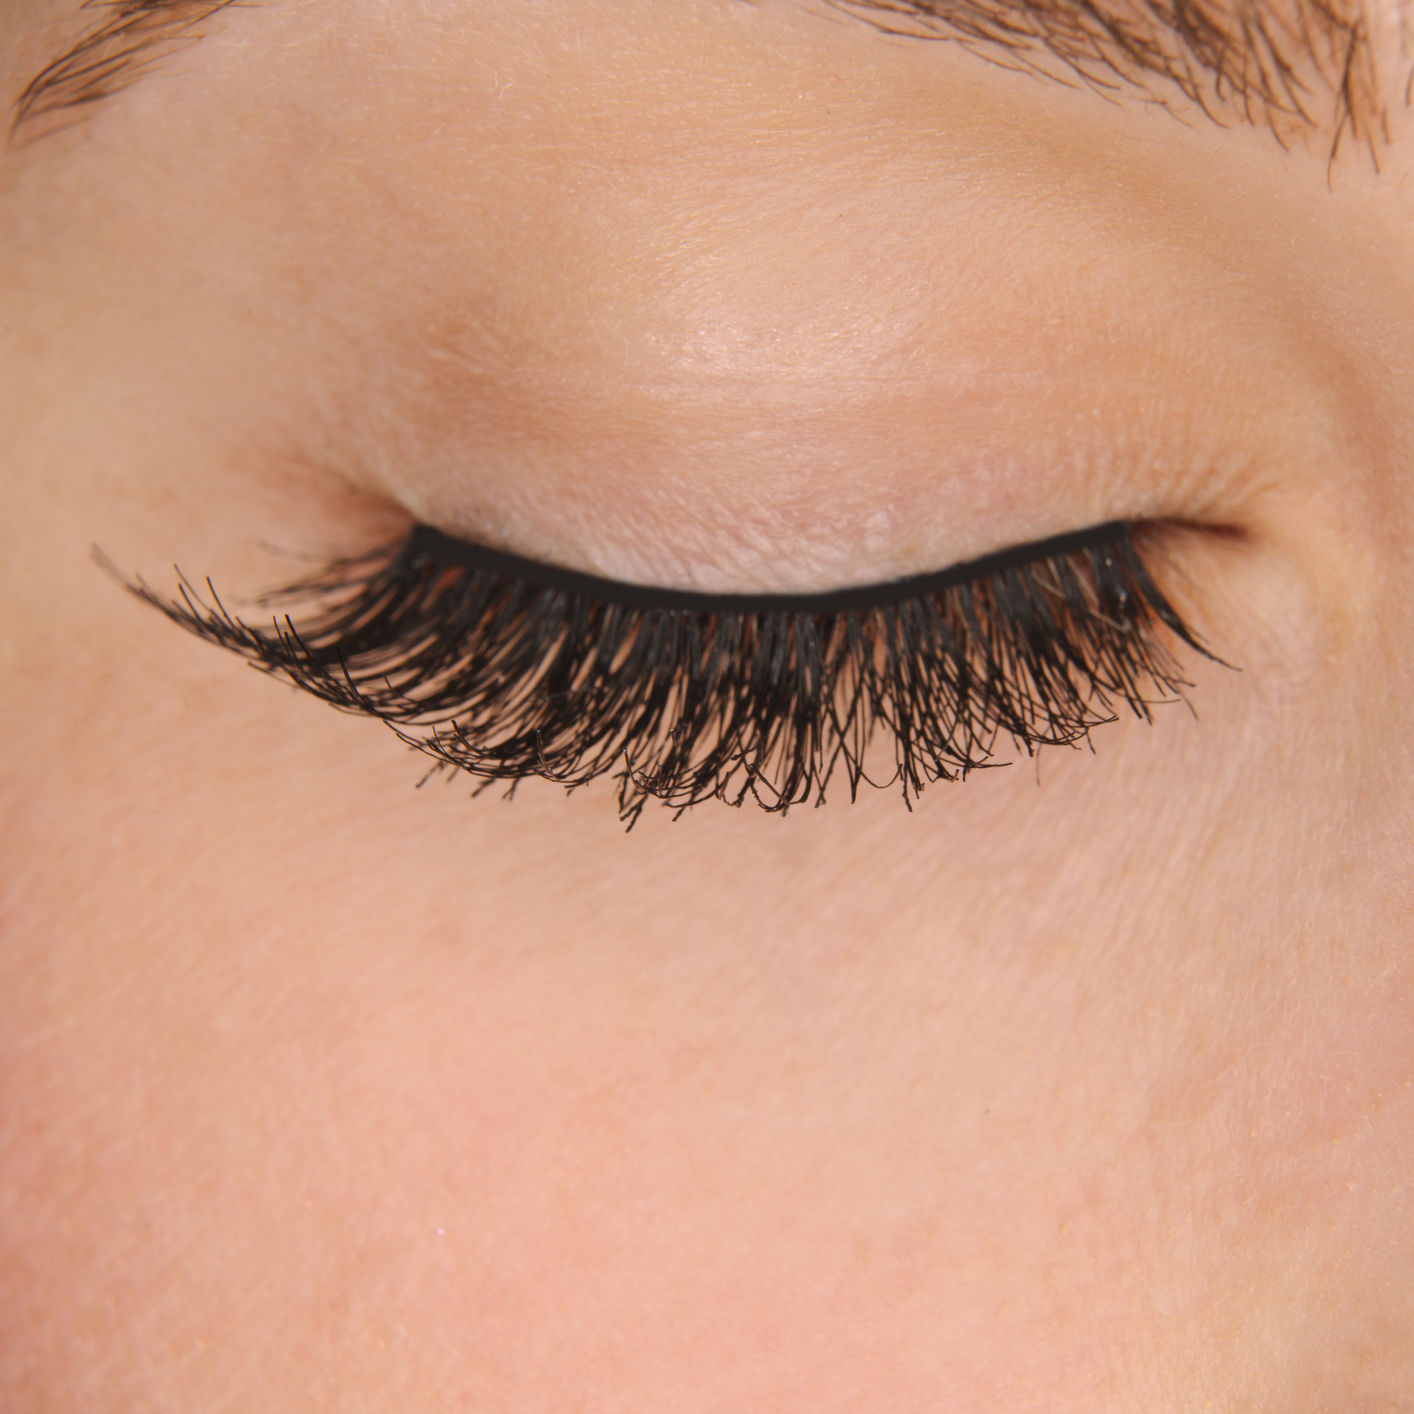 Why Lash Extensions Cost So Much